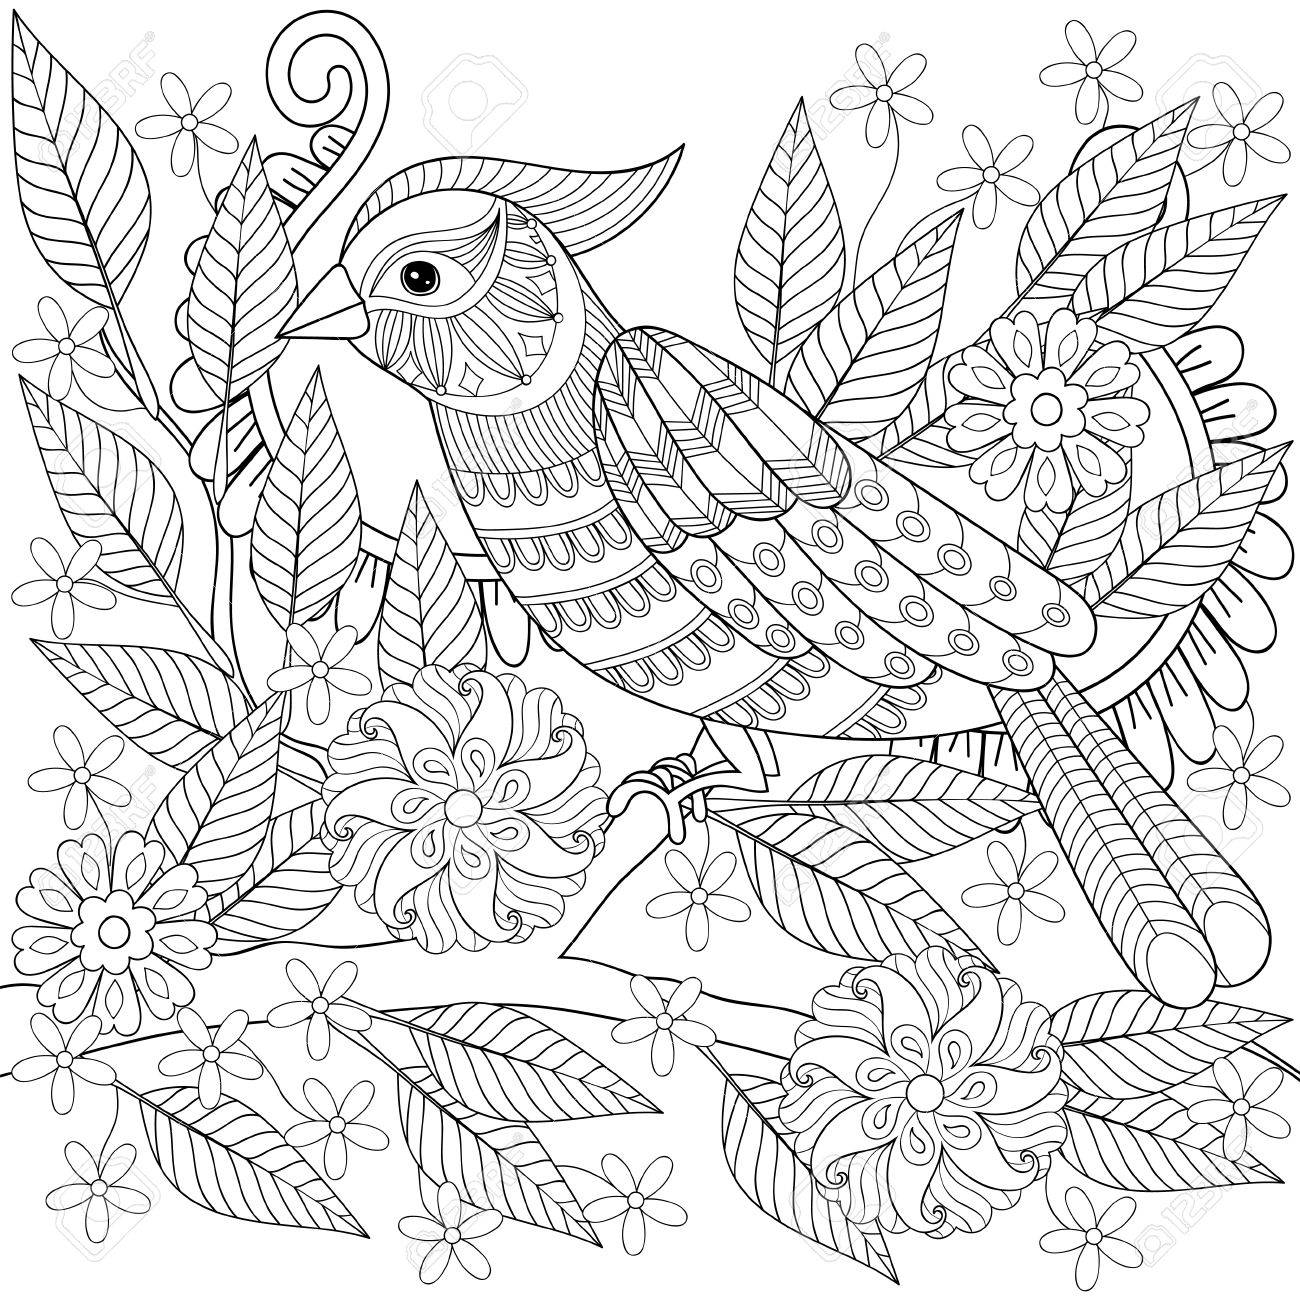 1300x1300 Adult Anti Stress Coloring Page With Tropical Bird. Hand Drawn